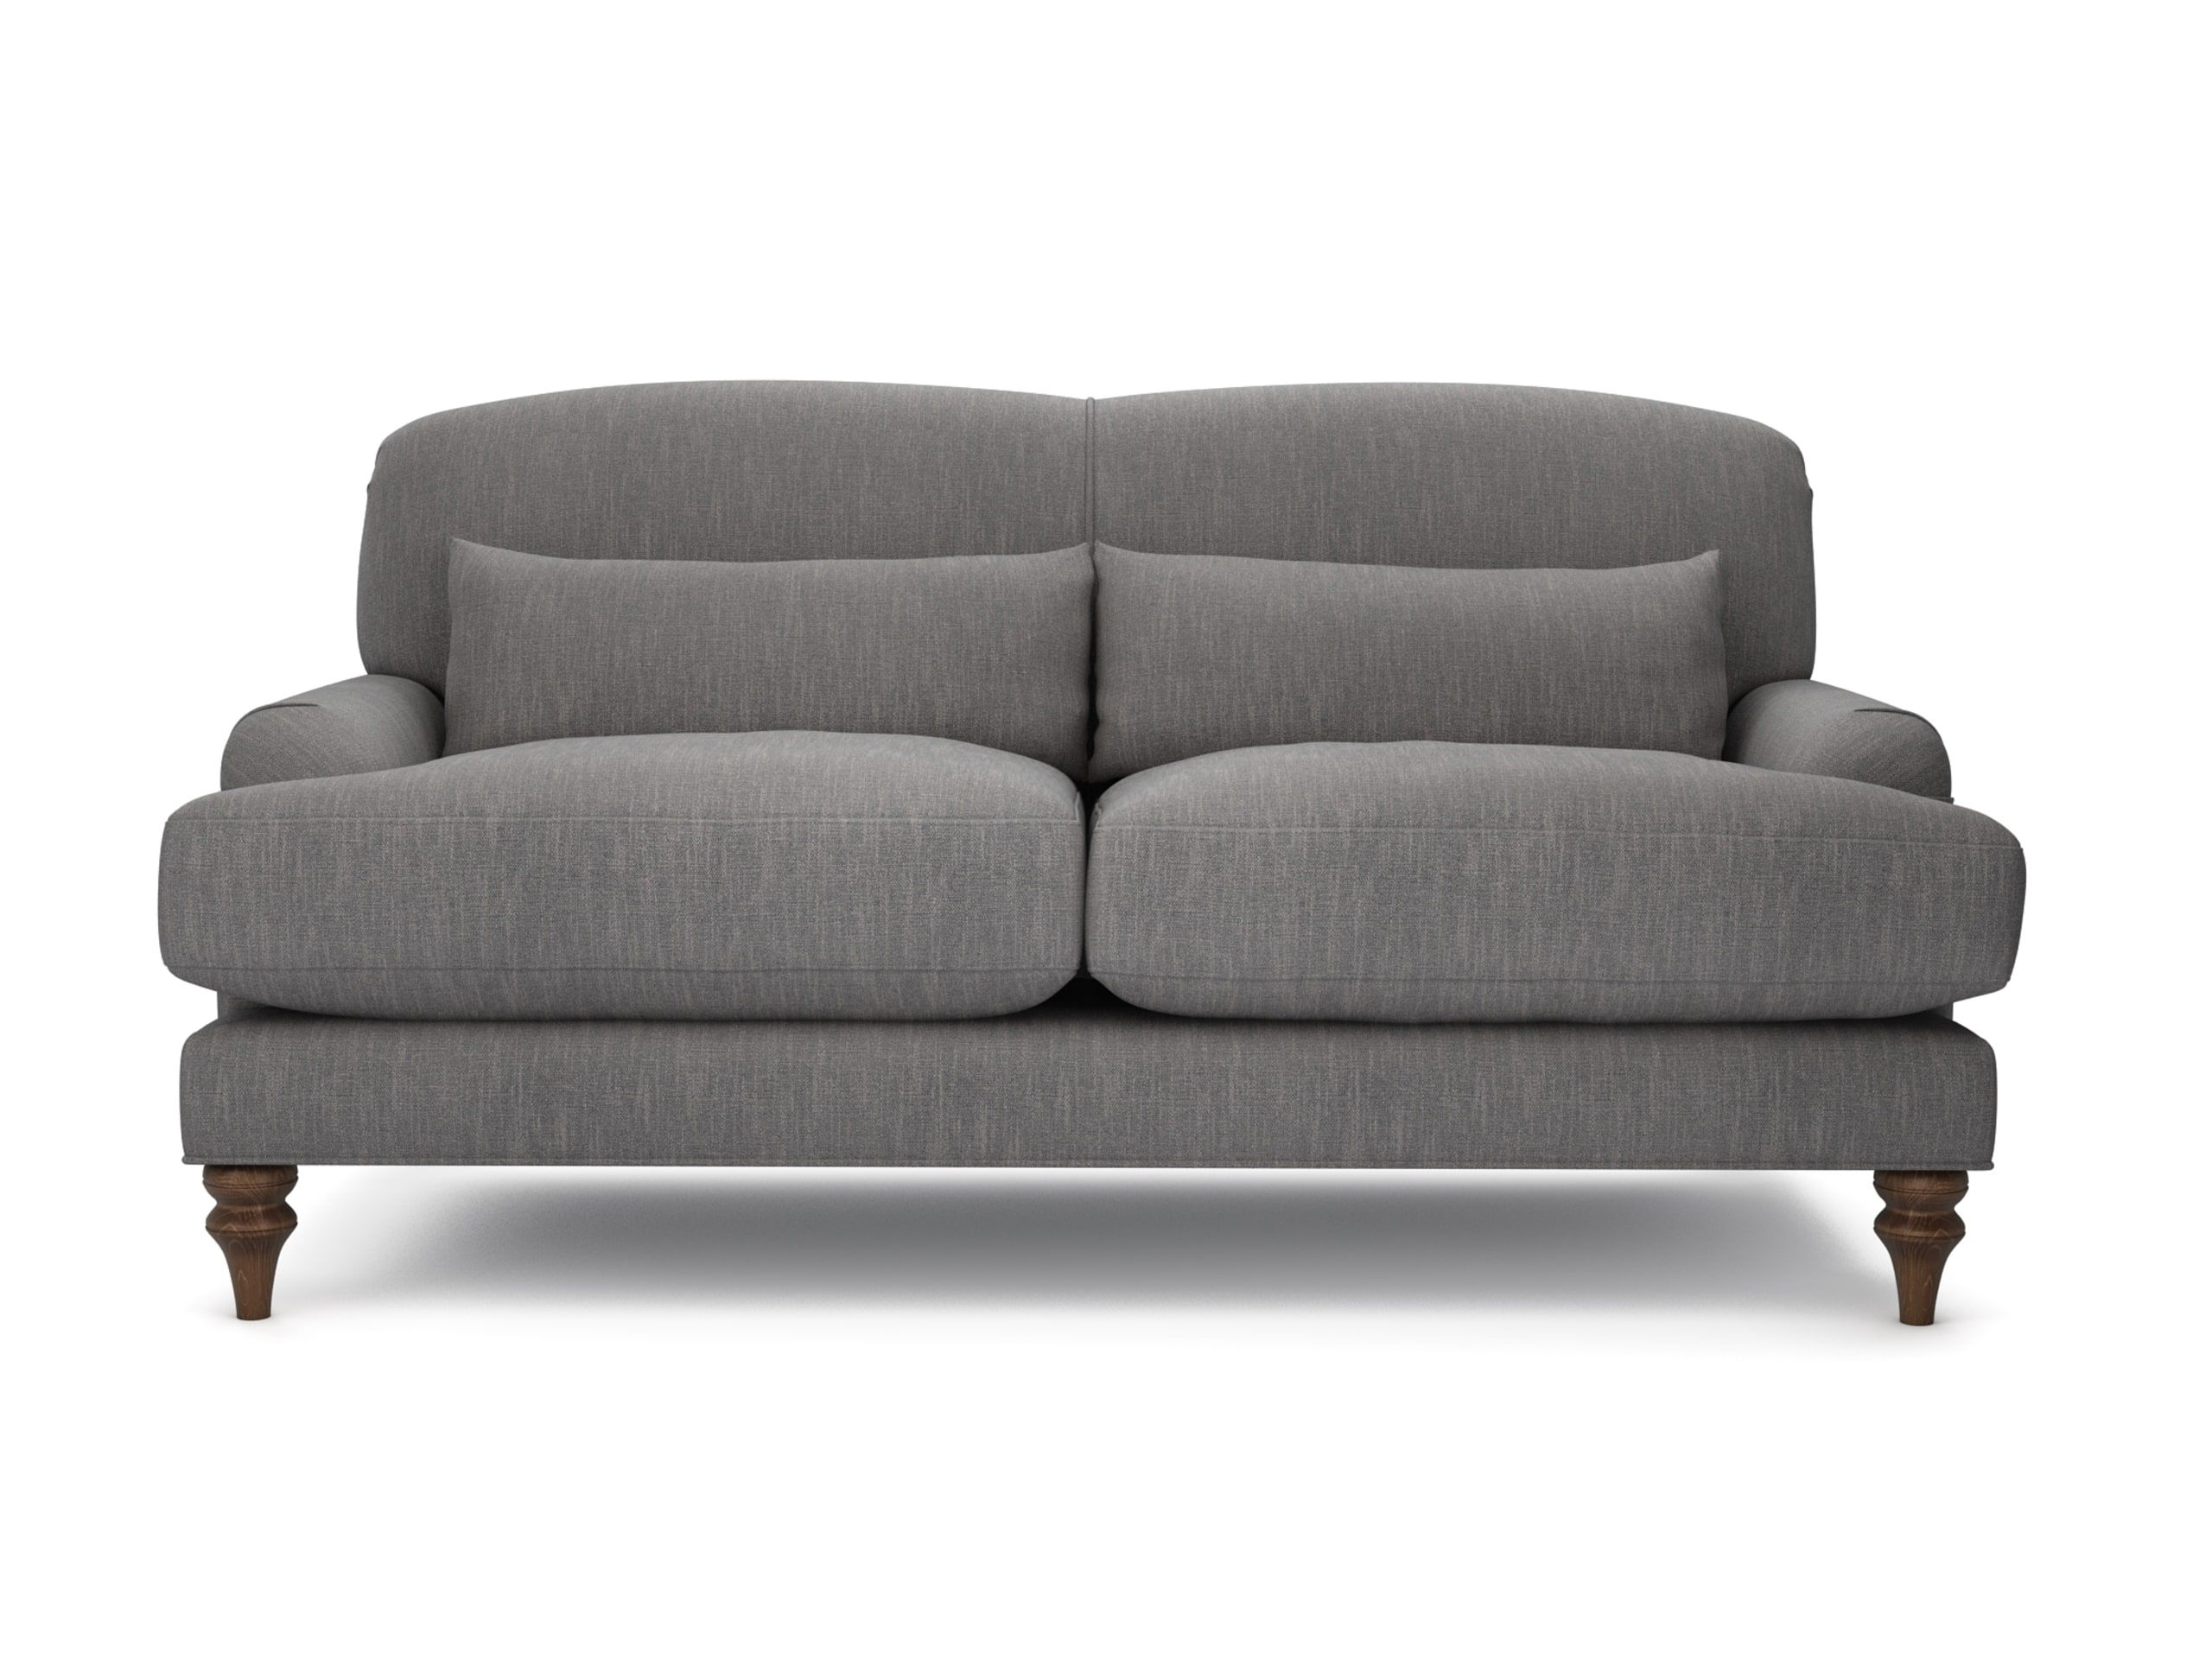 Sofa lounger pictures to pin on pinterest - The Lounge Co Rosie 2 Seater Sofa In House Cotton Linen Squirrel Tail